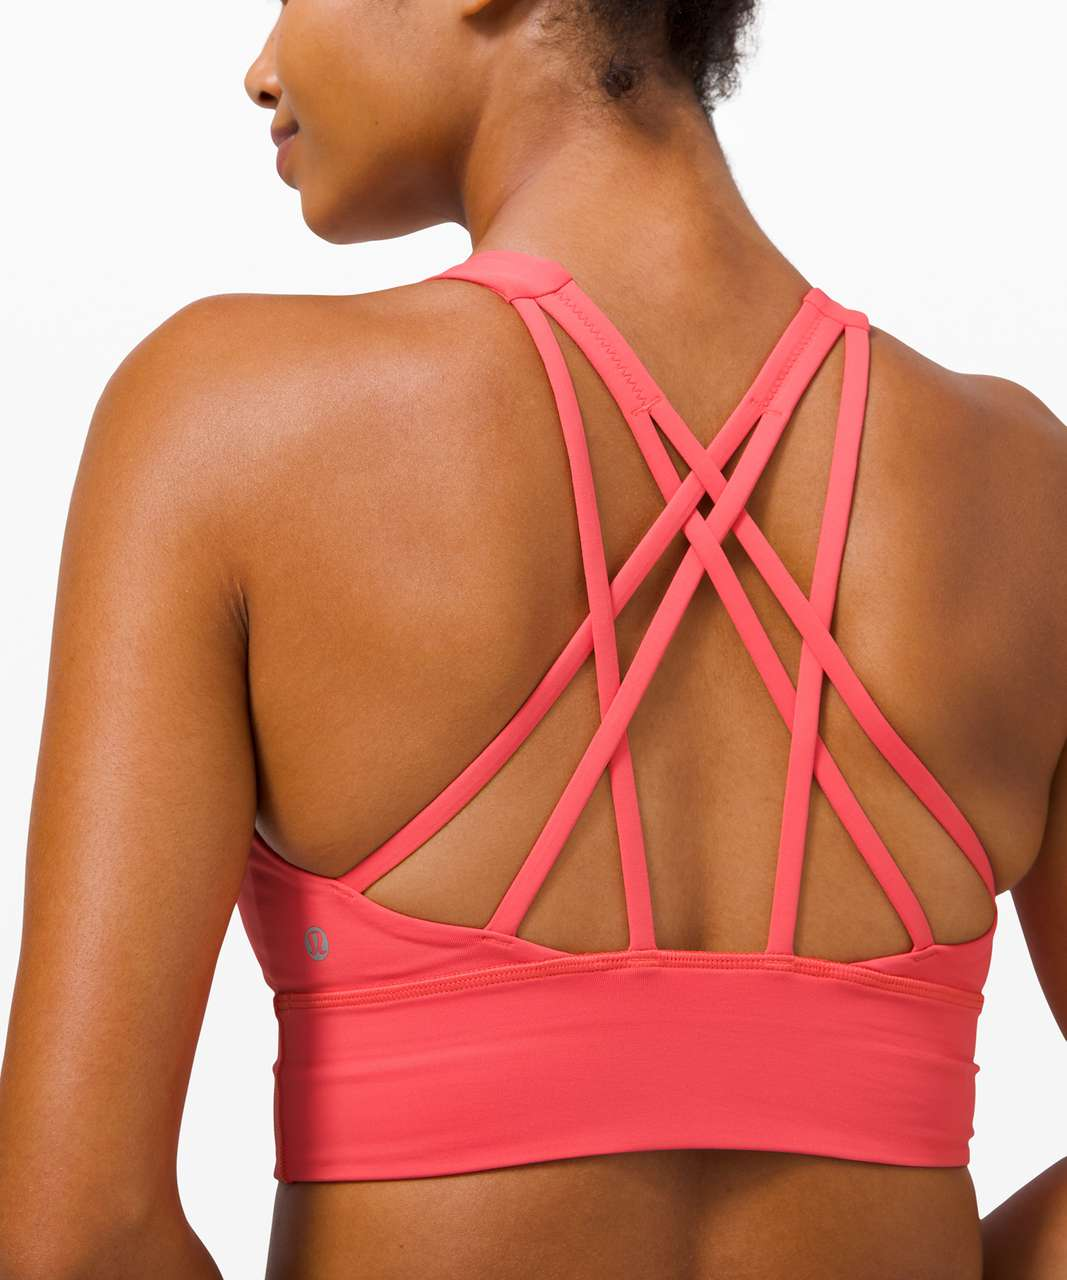 Lululemon Free To Be Serene Bra Long Line *Light Support, C/D Cup - Watermelon Red